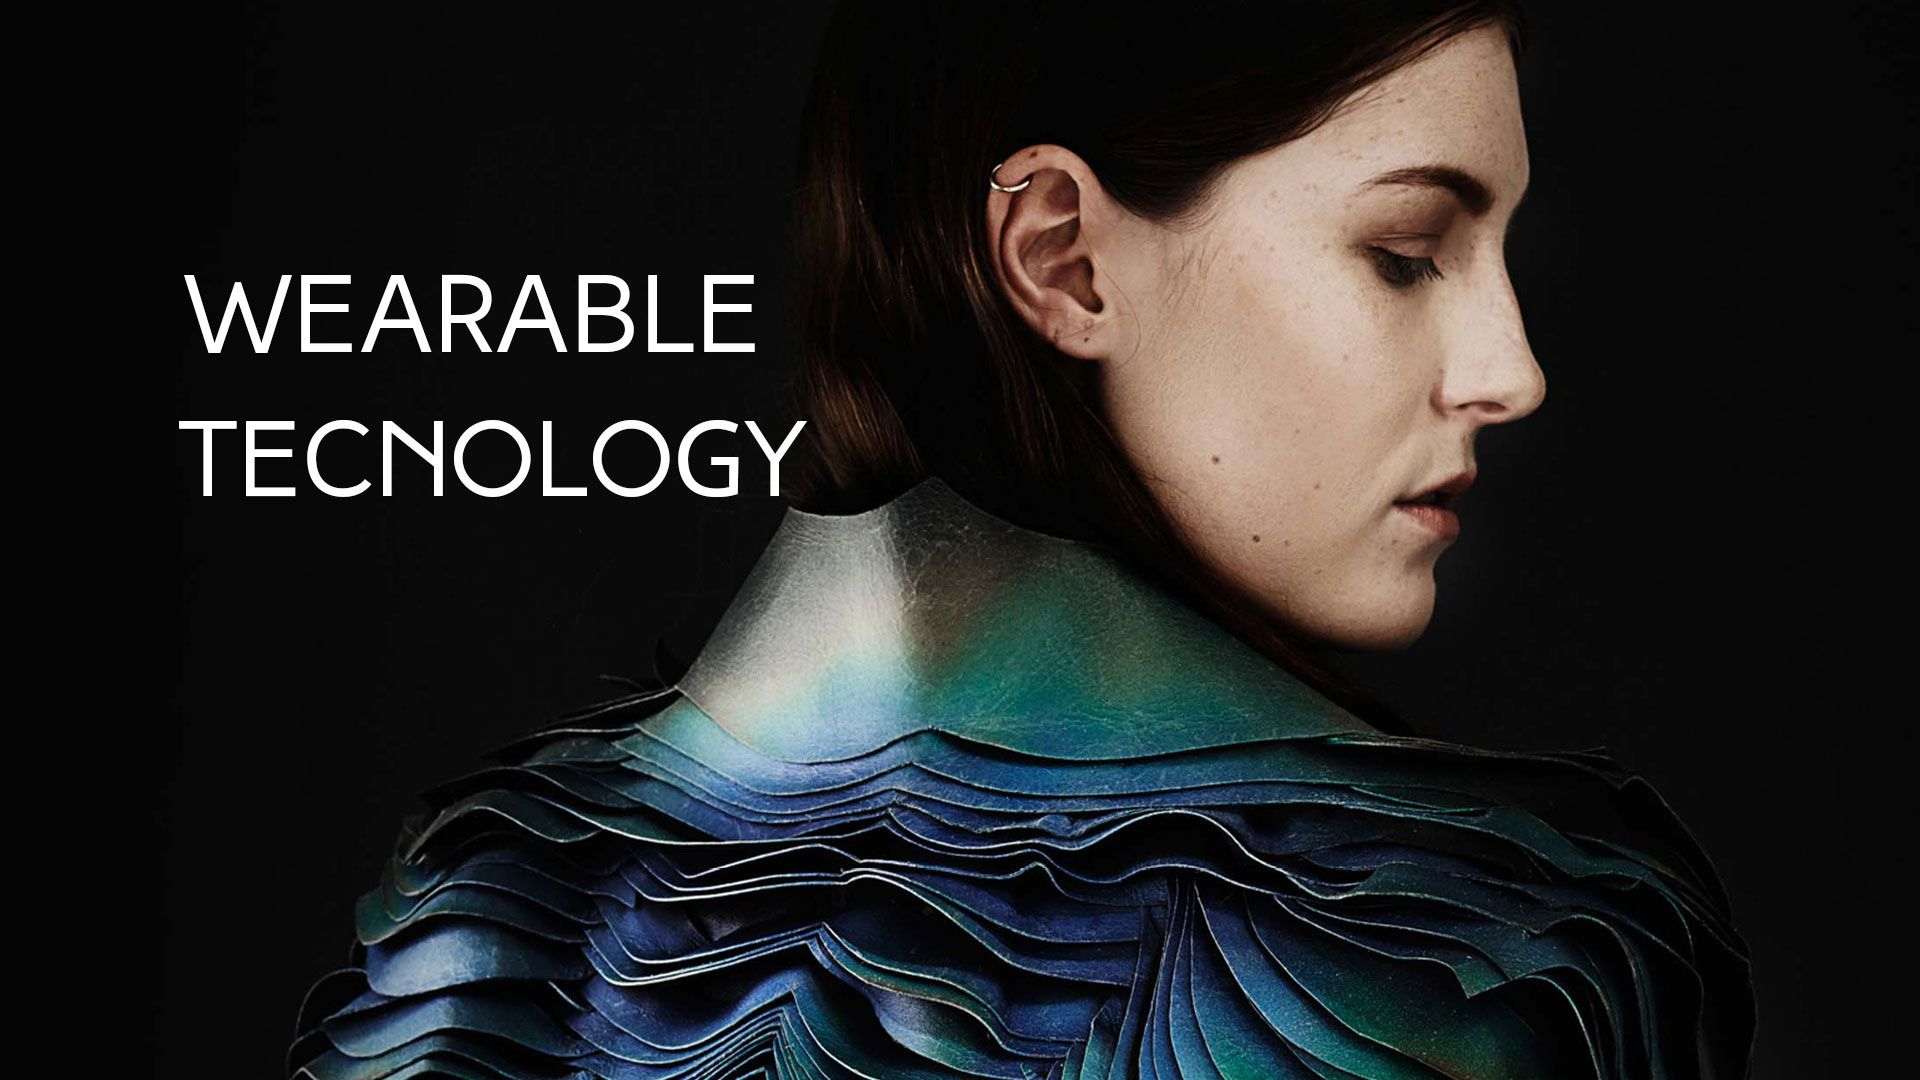 WEARABLE TECNOLOGY - SSSTENDHAL magazine